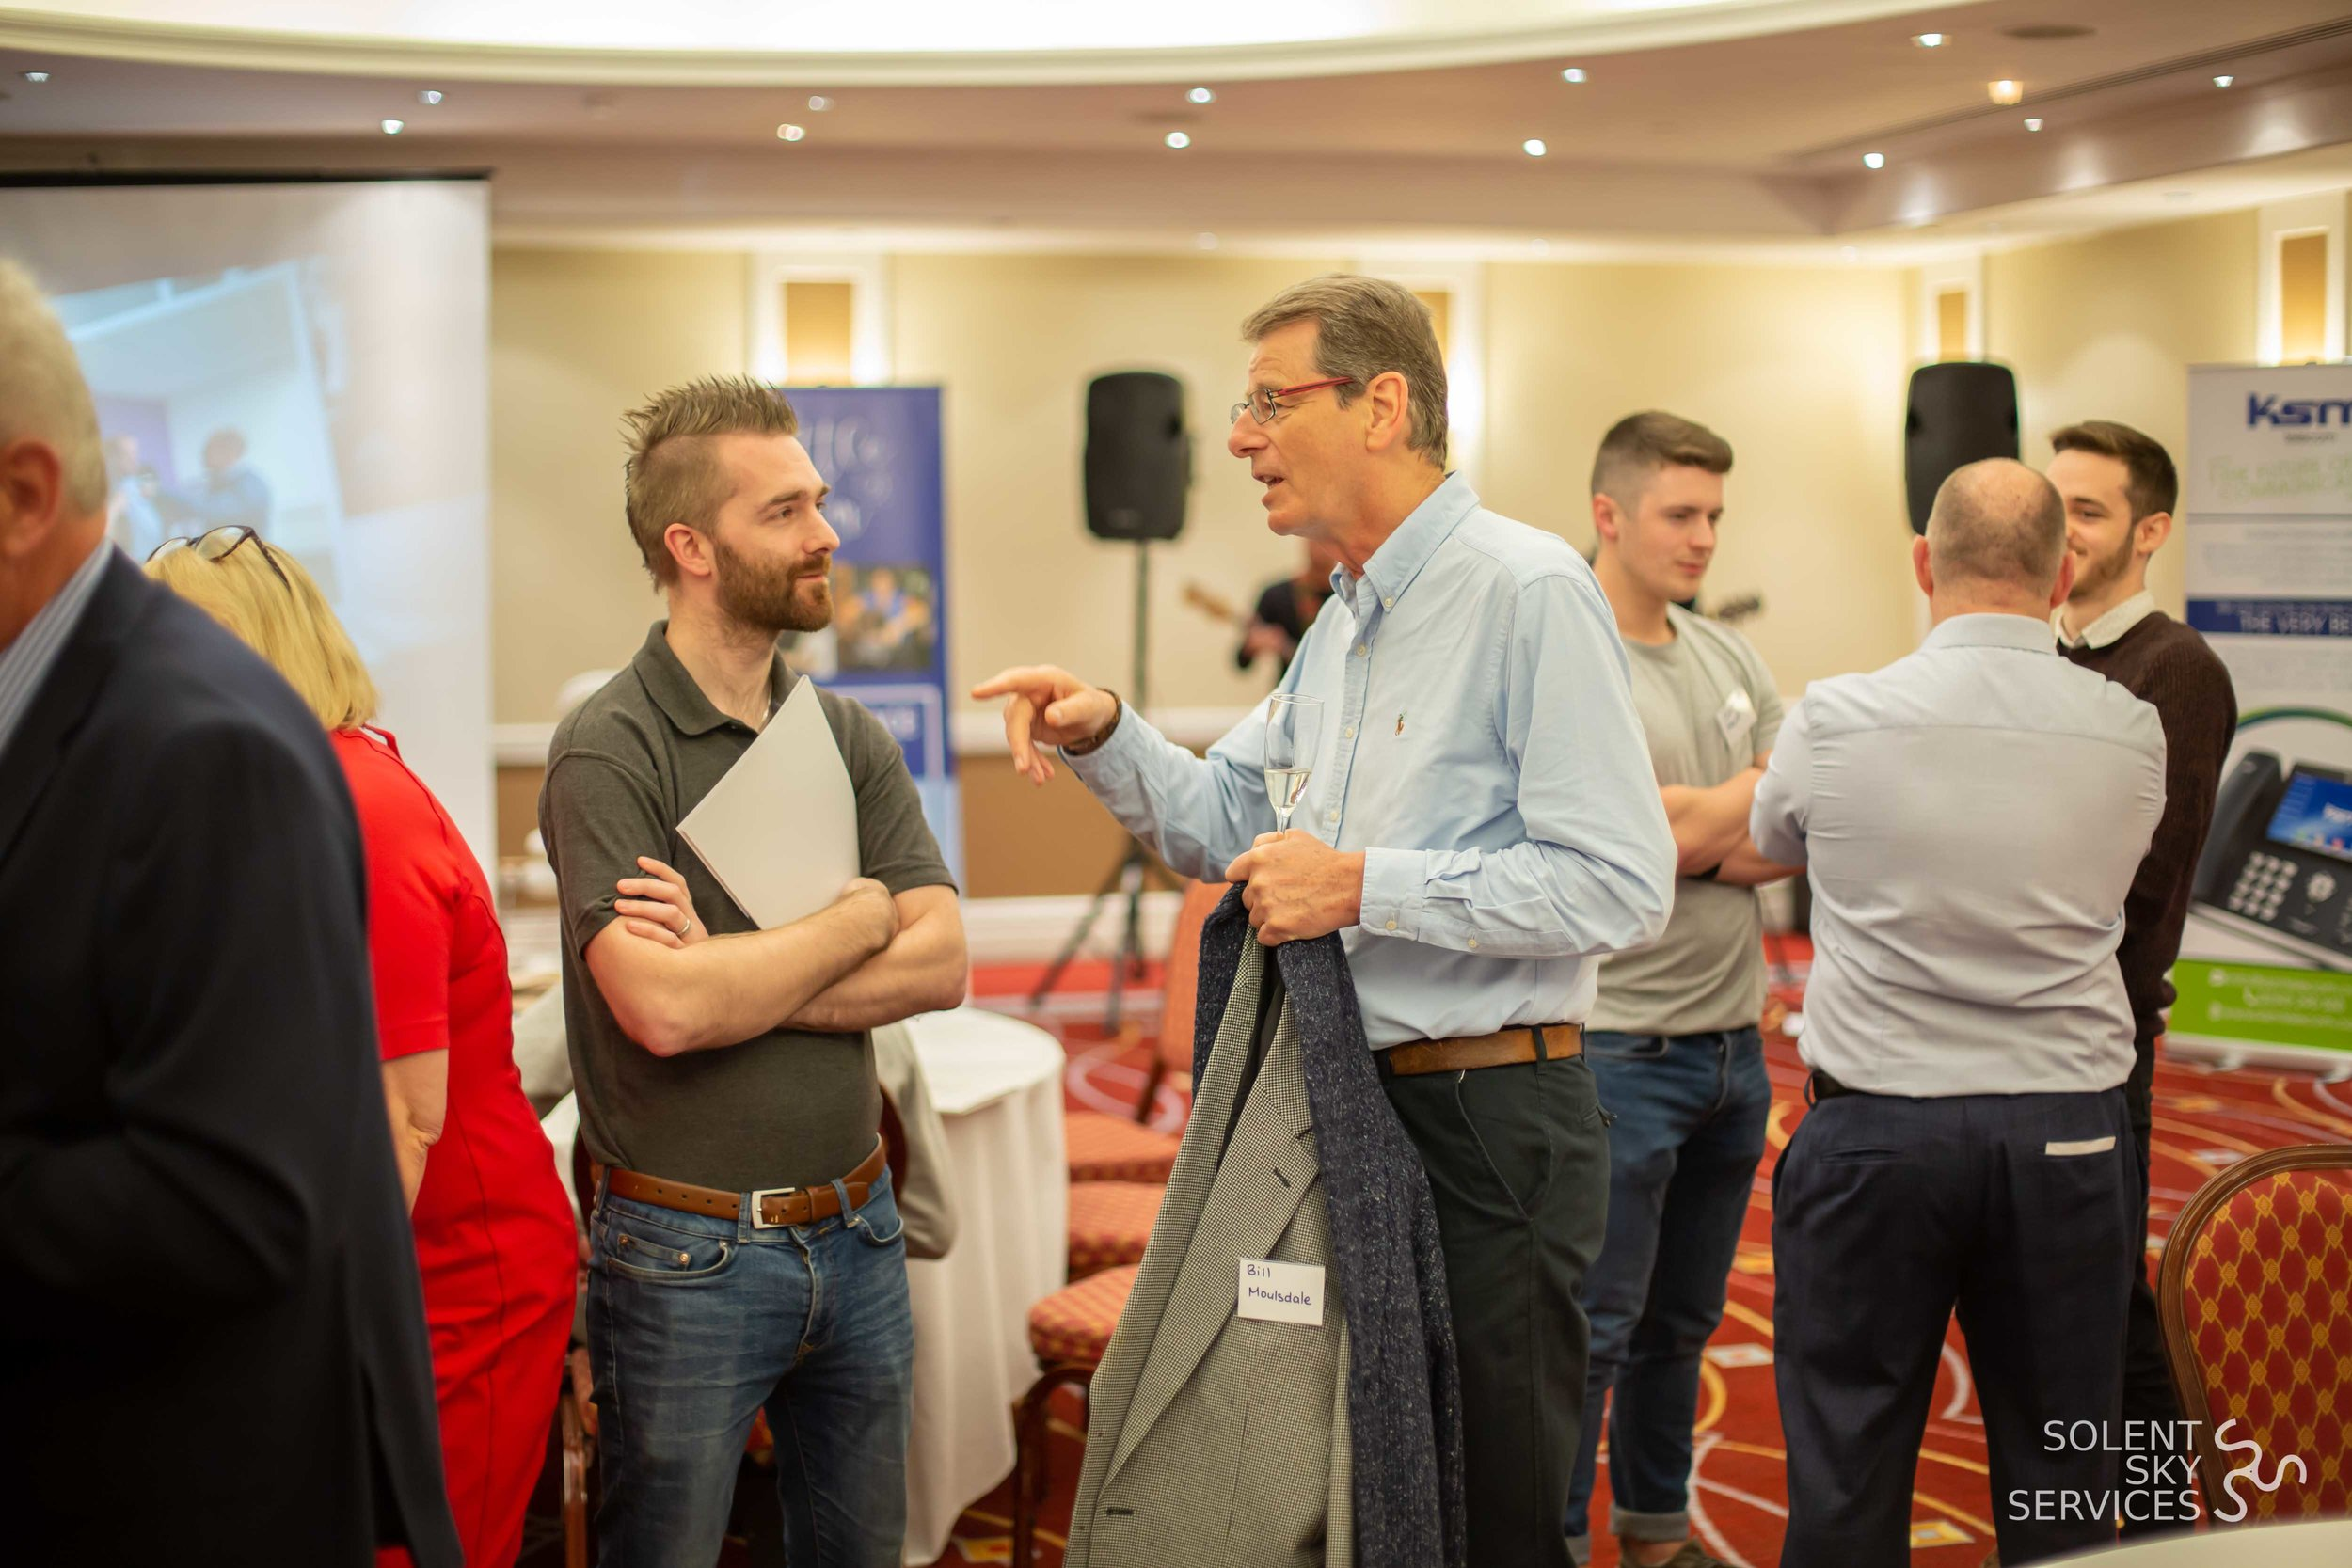 Synergy Success Networking Event #2 - Solent Sky Services-14.JPG